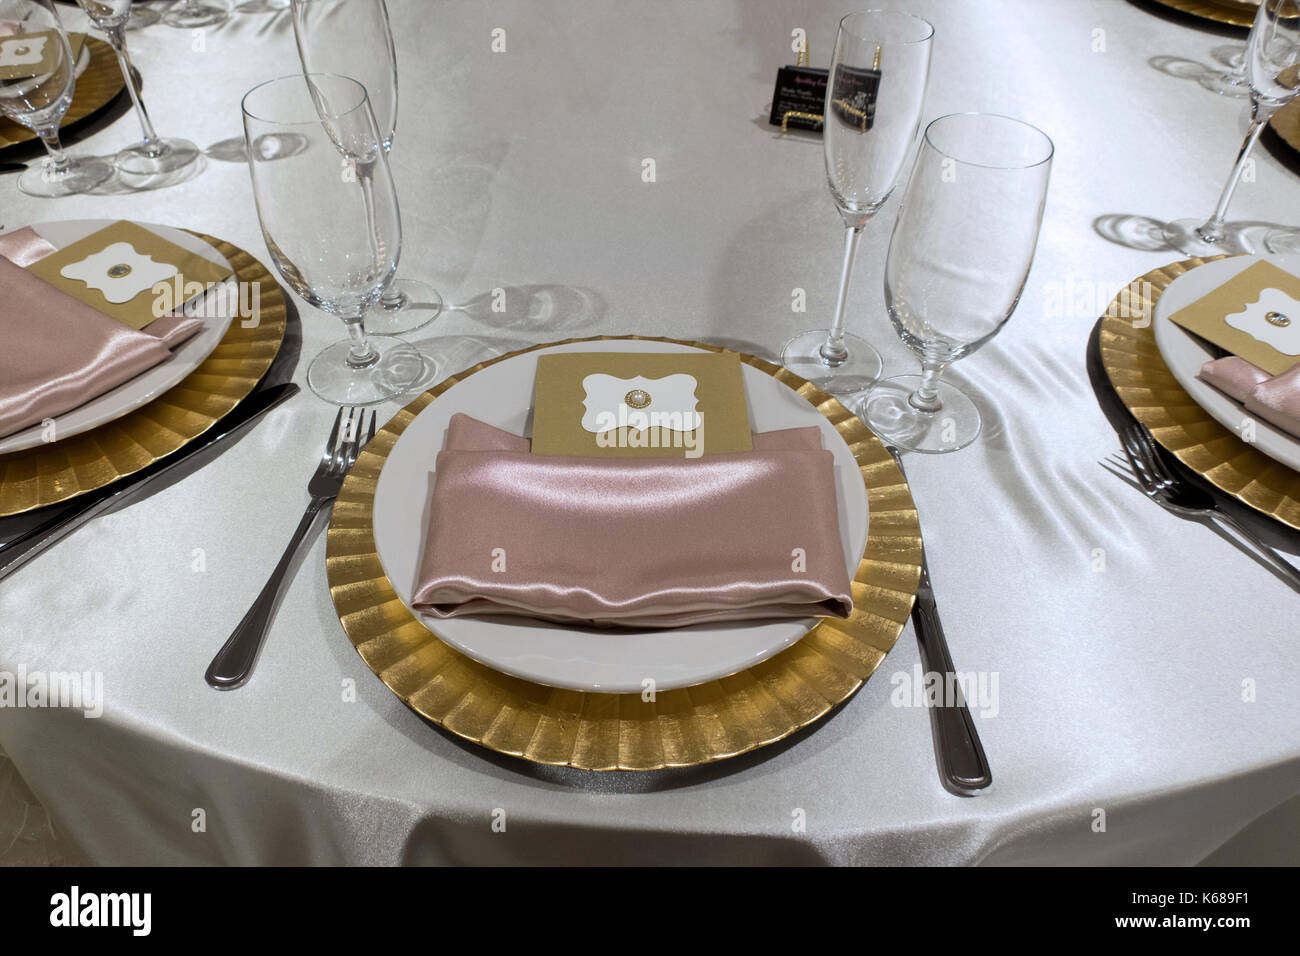 A fancy place setting with a golden plate pink napkins and an invitation card at a white satin tableclothed place. & A fancy place setting with a golden plate pink napkins and an ...